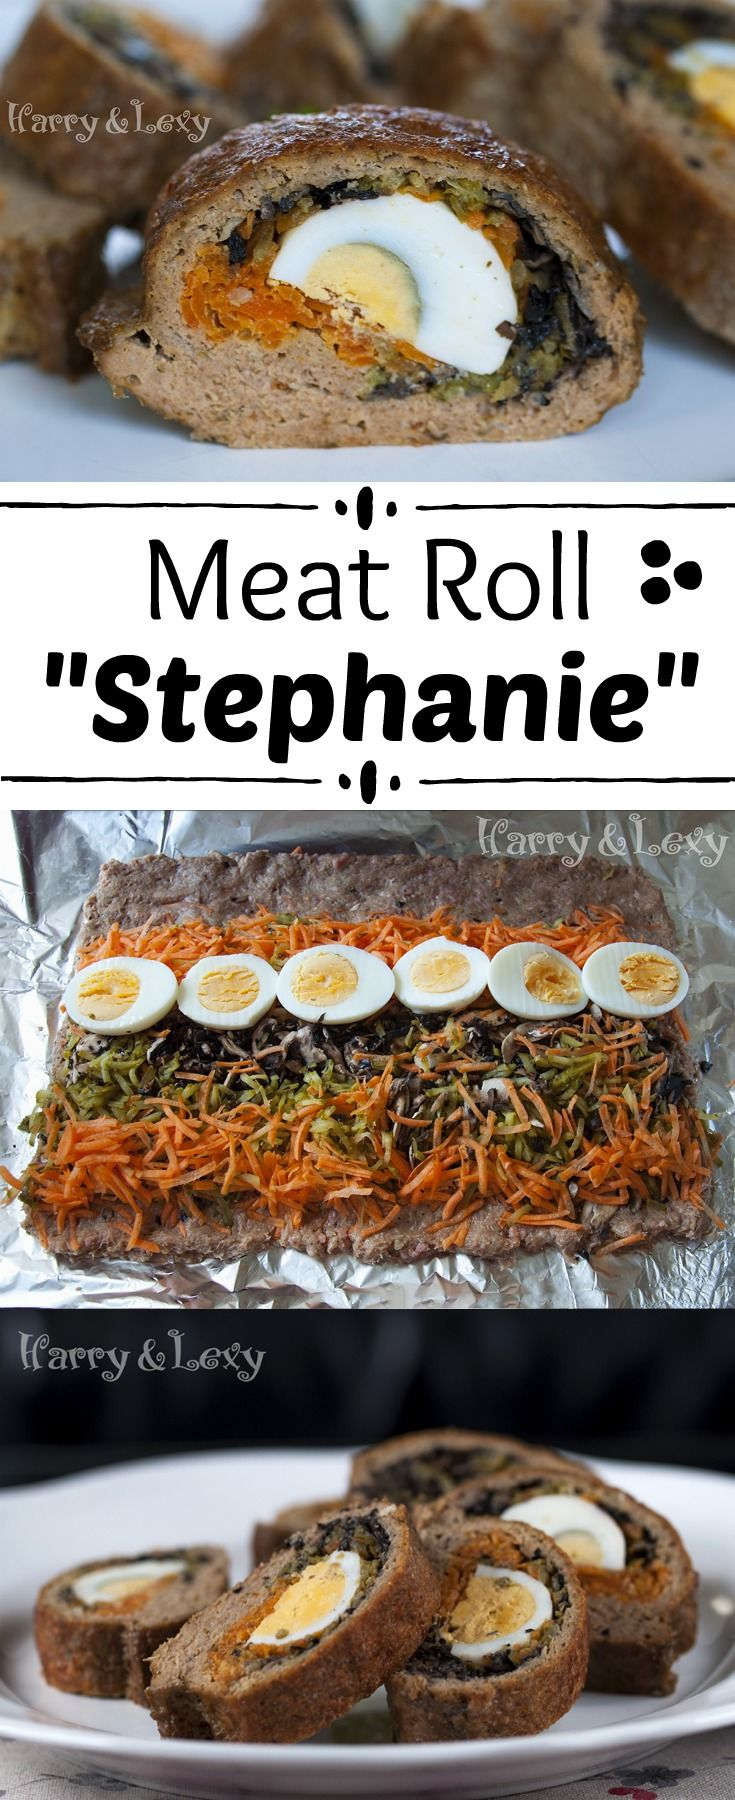 Meat roll stephanie recipe dinner ideas harry and lexys meat roll stephanie recipe dinner ideas harry and lexys workshop forumfinder Images